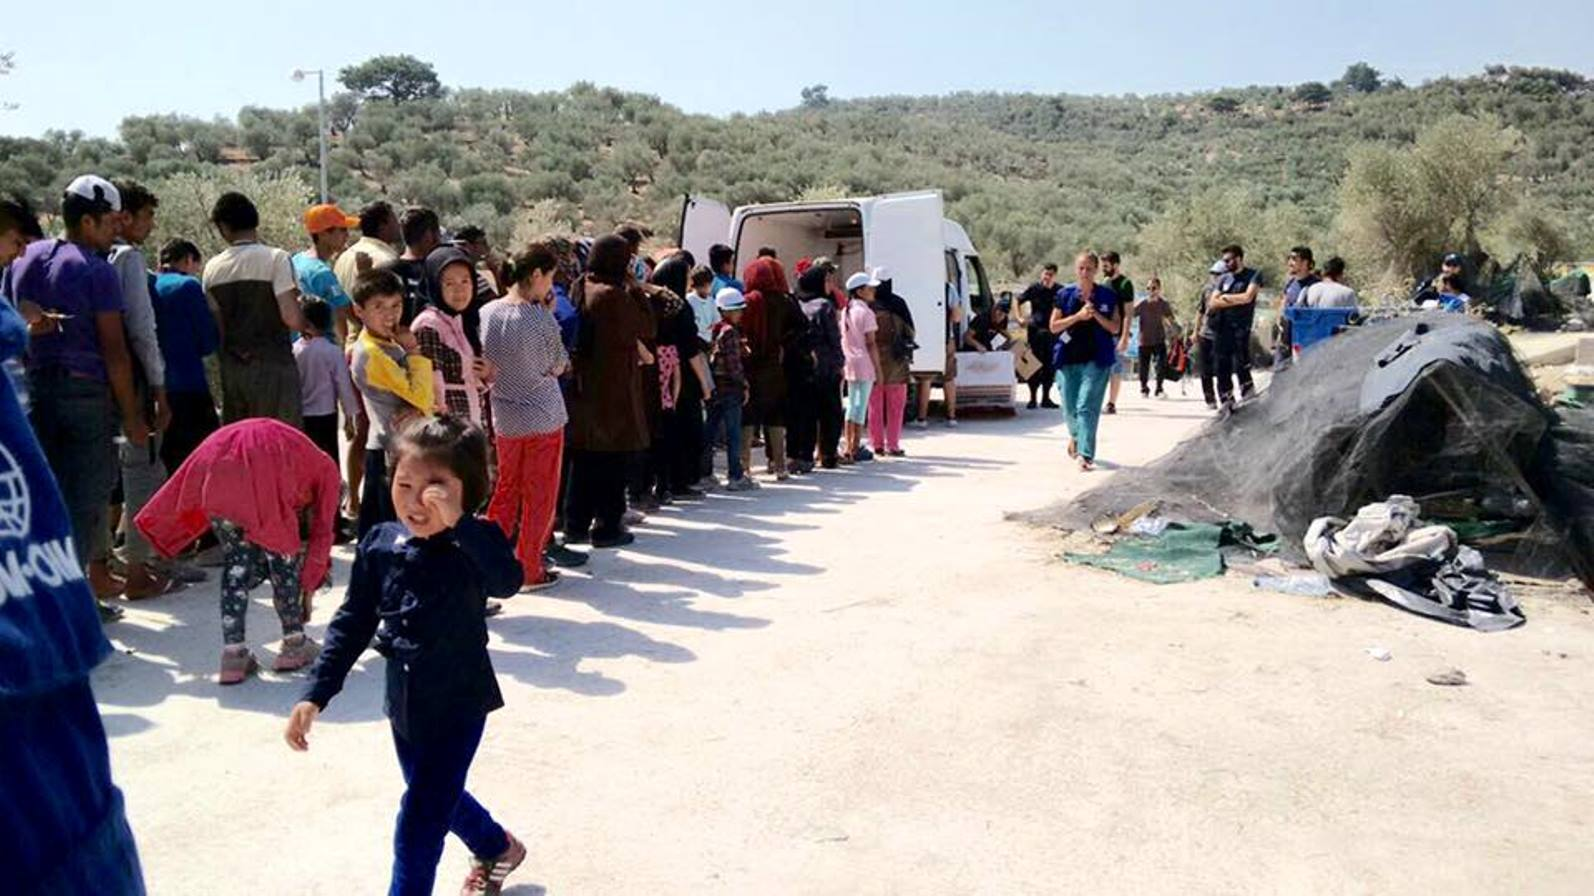 IsraAID distributing aid to refugees arriving in Lesbos. Photo via Facebook